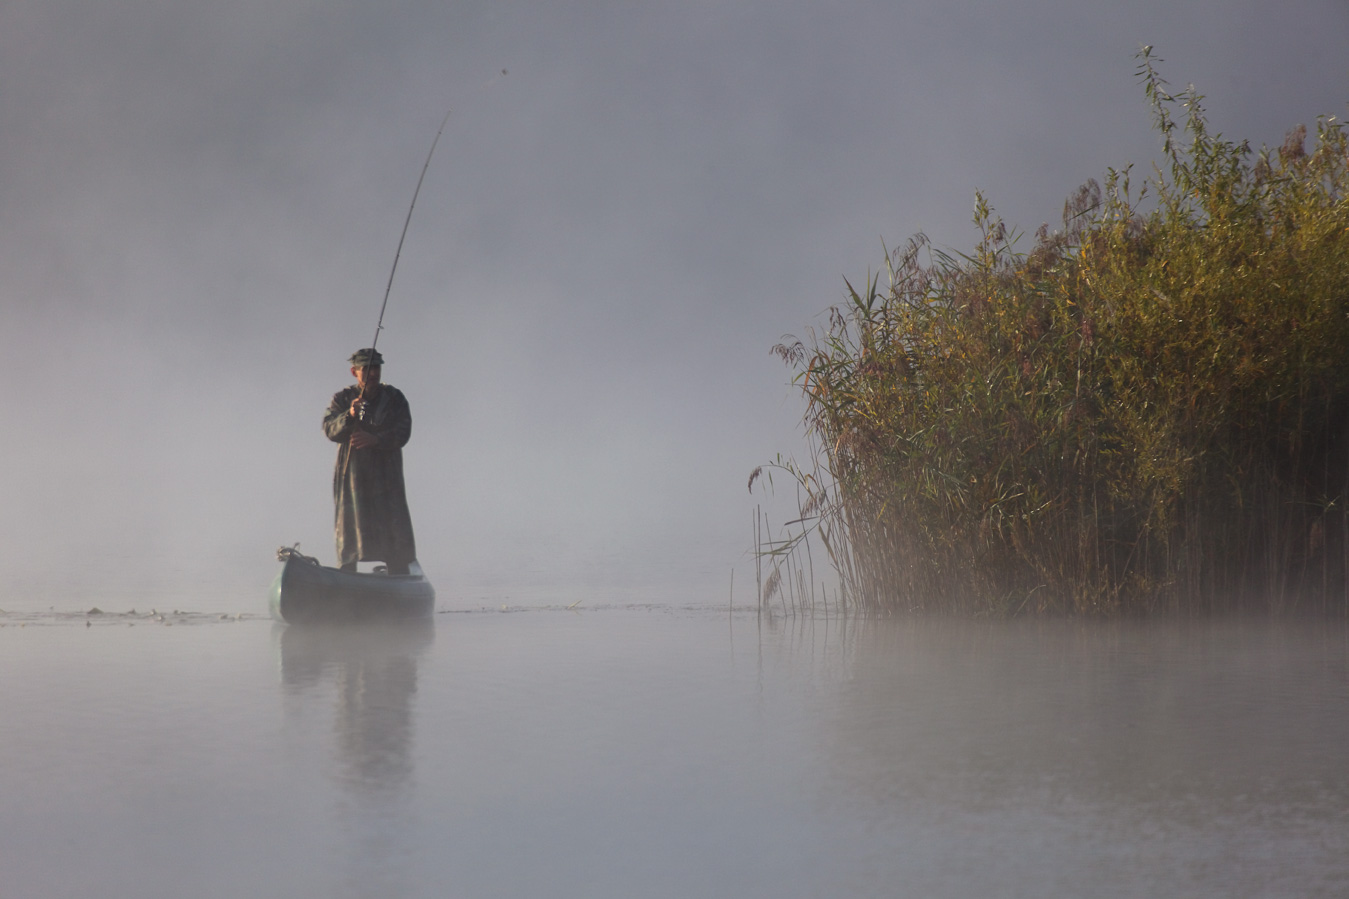 šoderica, croatia,lake, podravina, continental, plain, water, resort nature, wetland, river, fishing, boat, fog